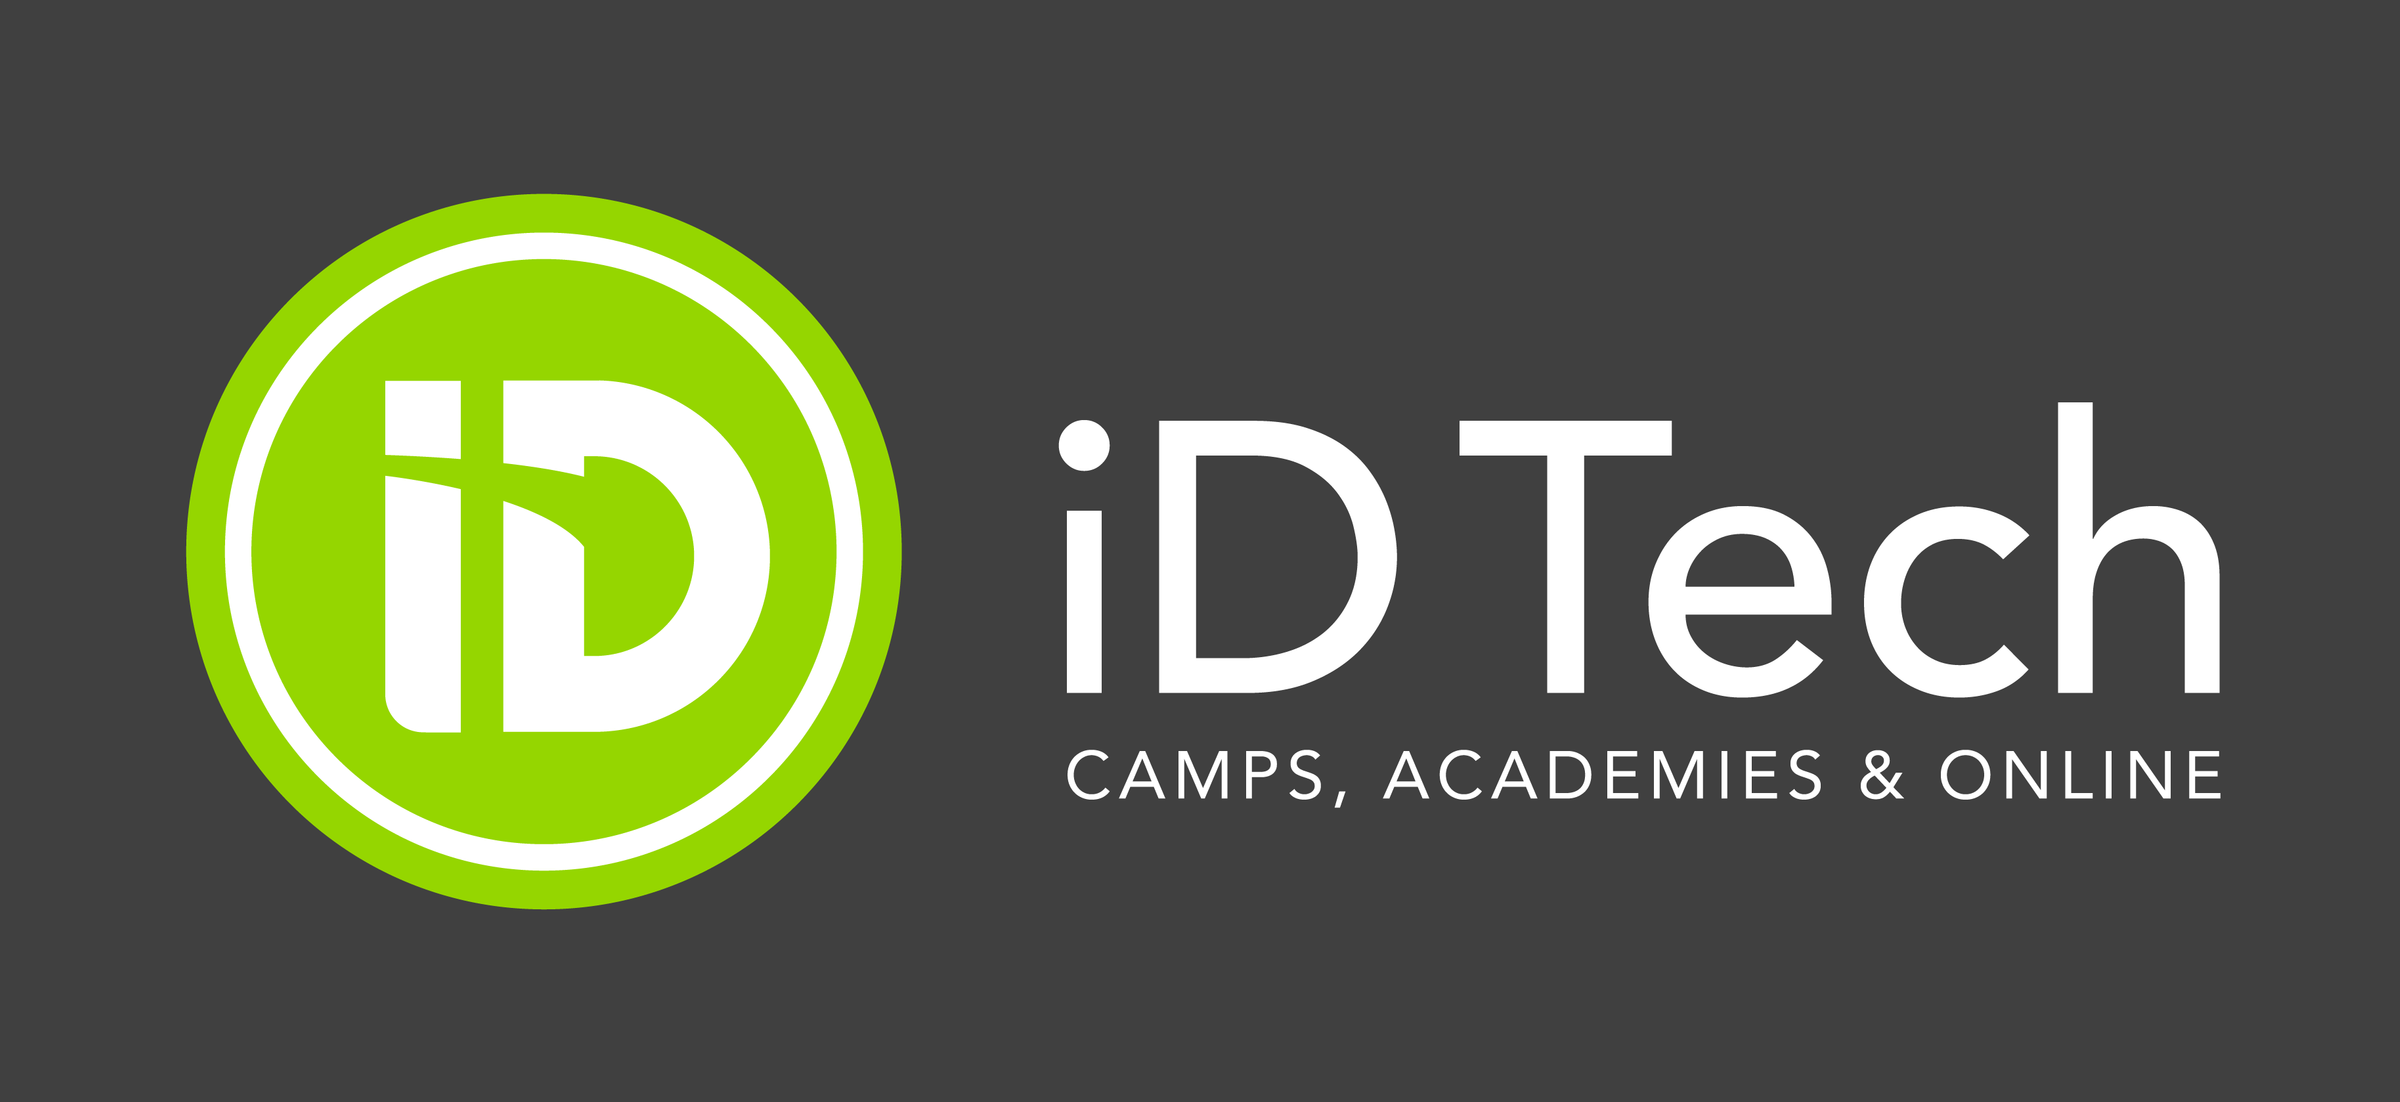 iD Tech Camps: #1 in STEM Education - Held at Amherst College